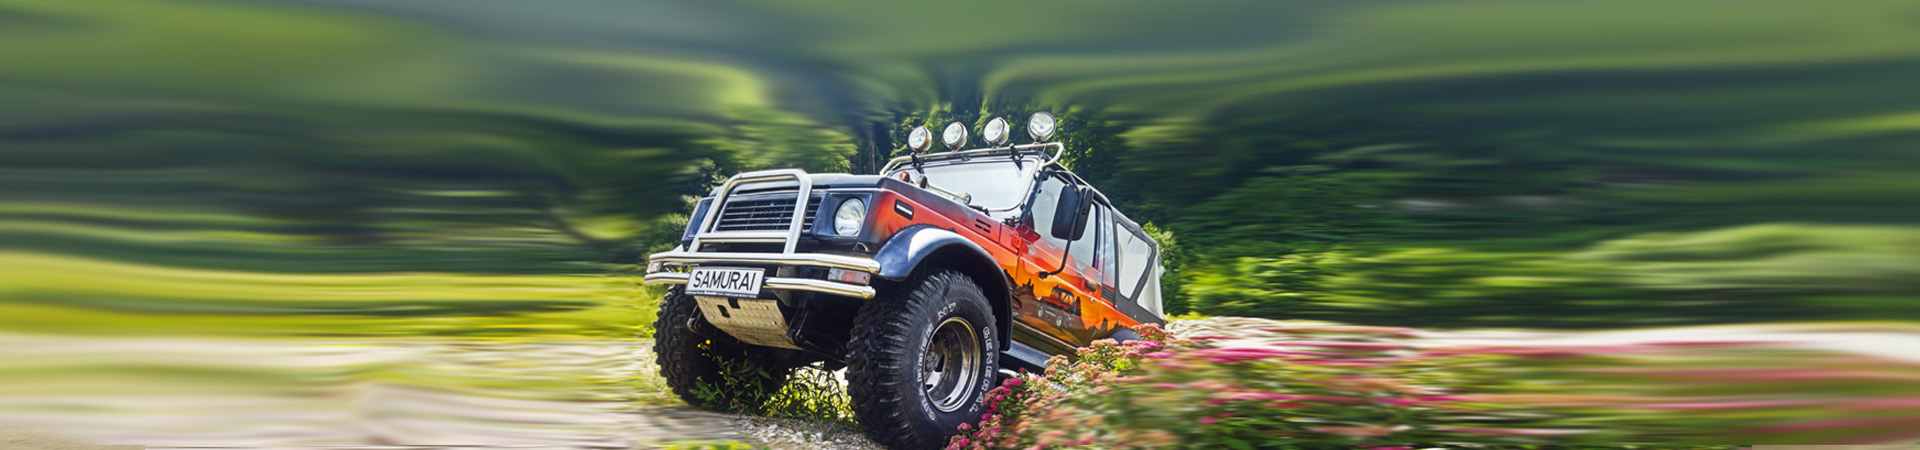 Monster Umbau Jimny